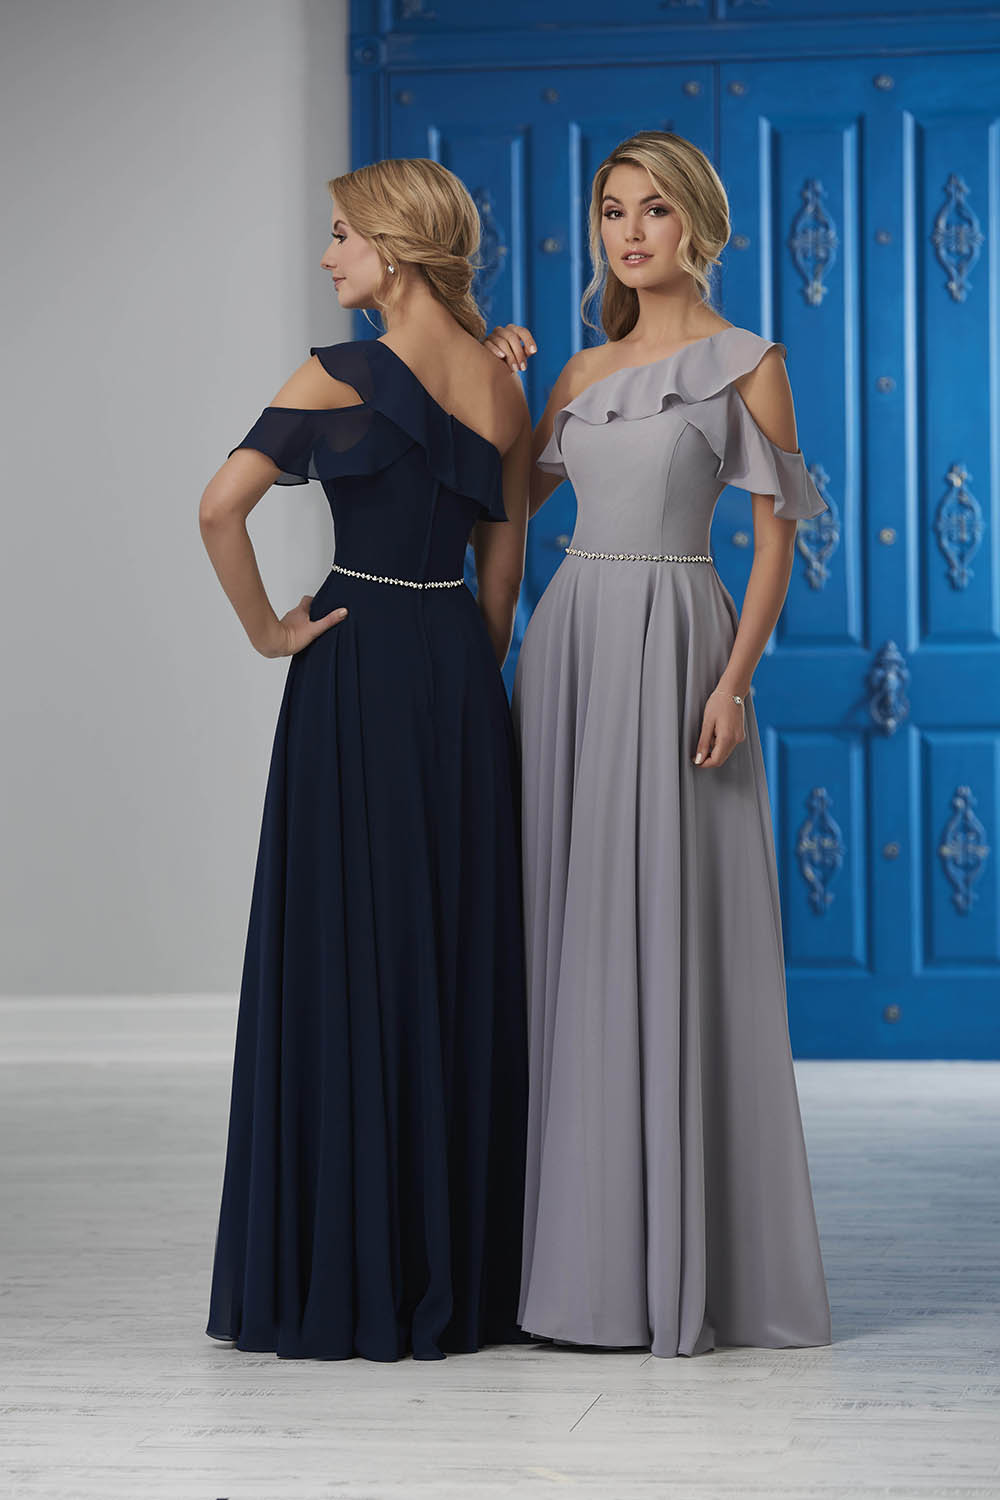 bridesmaid-dresses-jacquelin-bridals-canada-26201